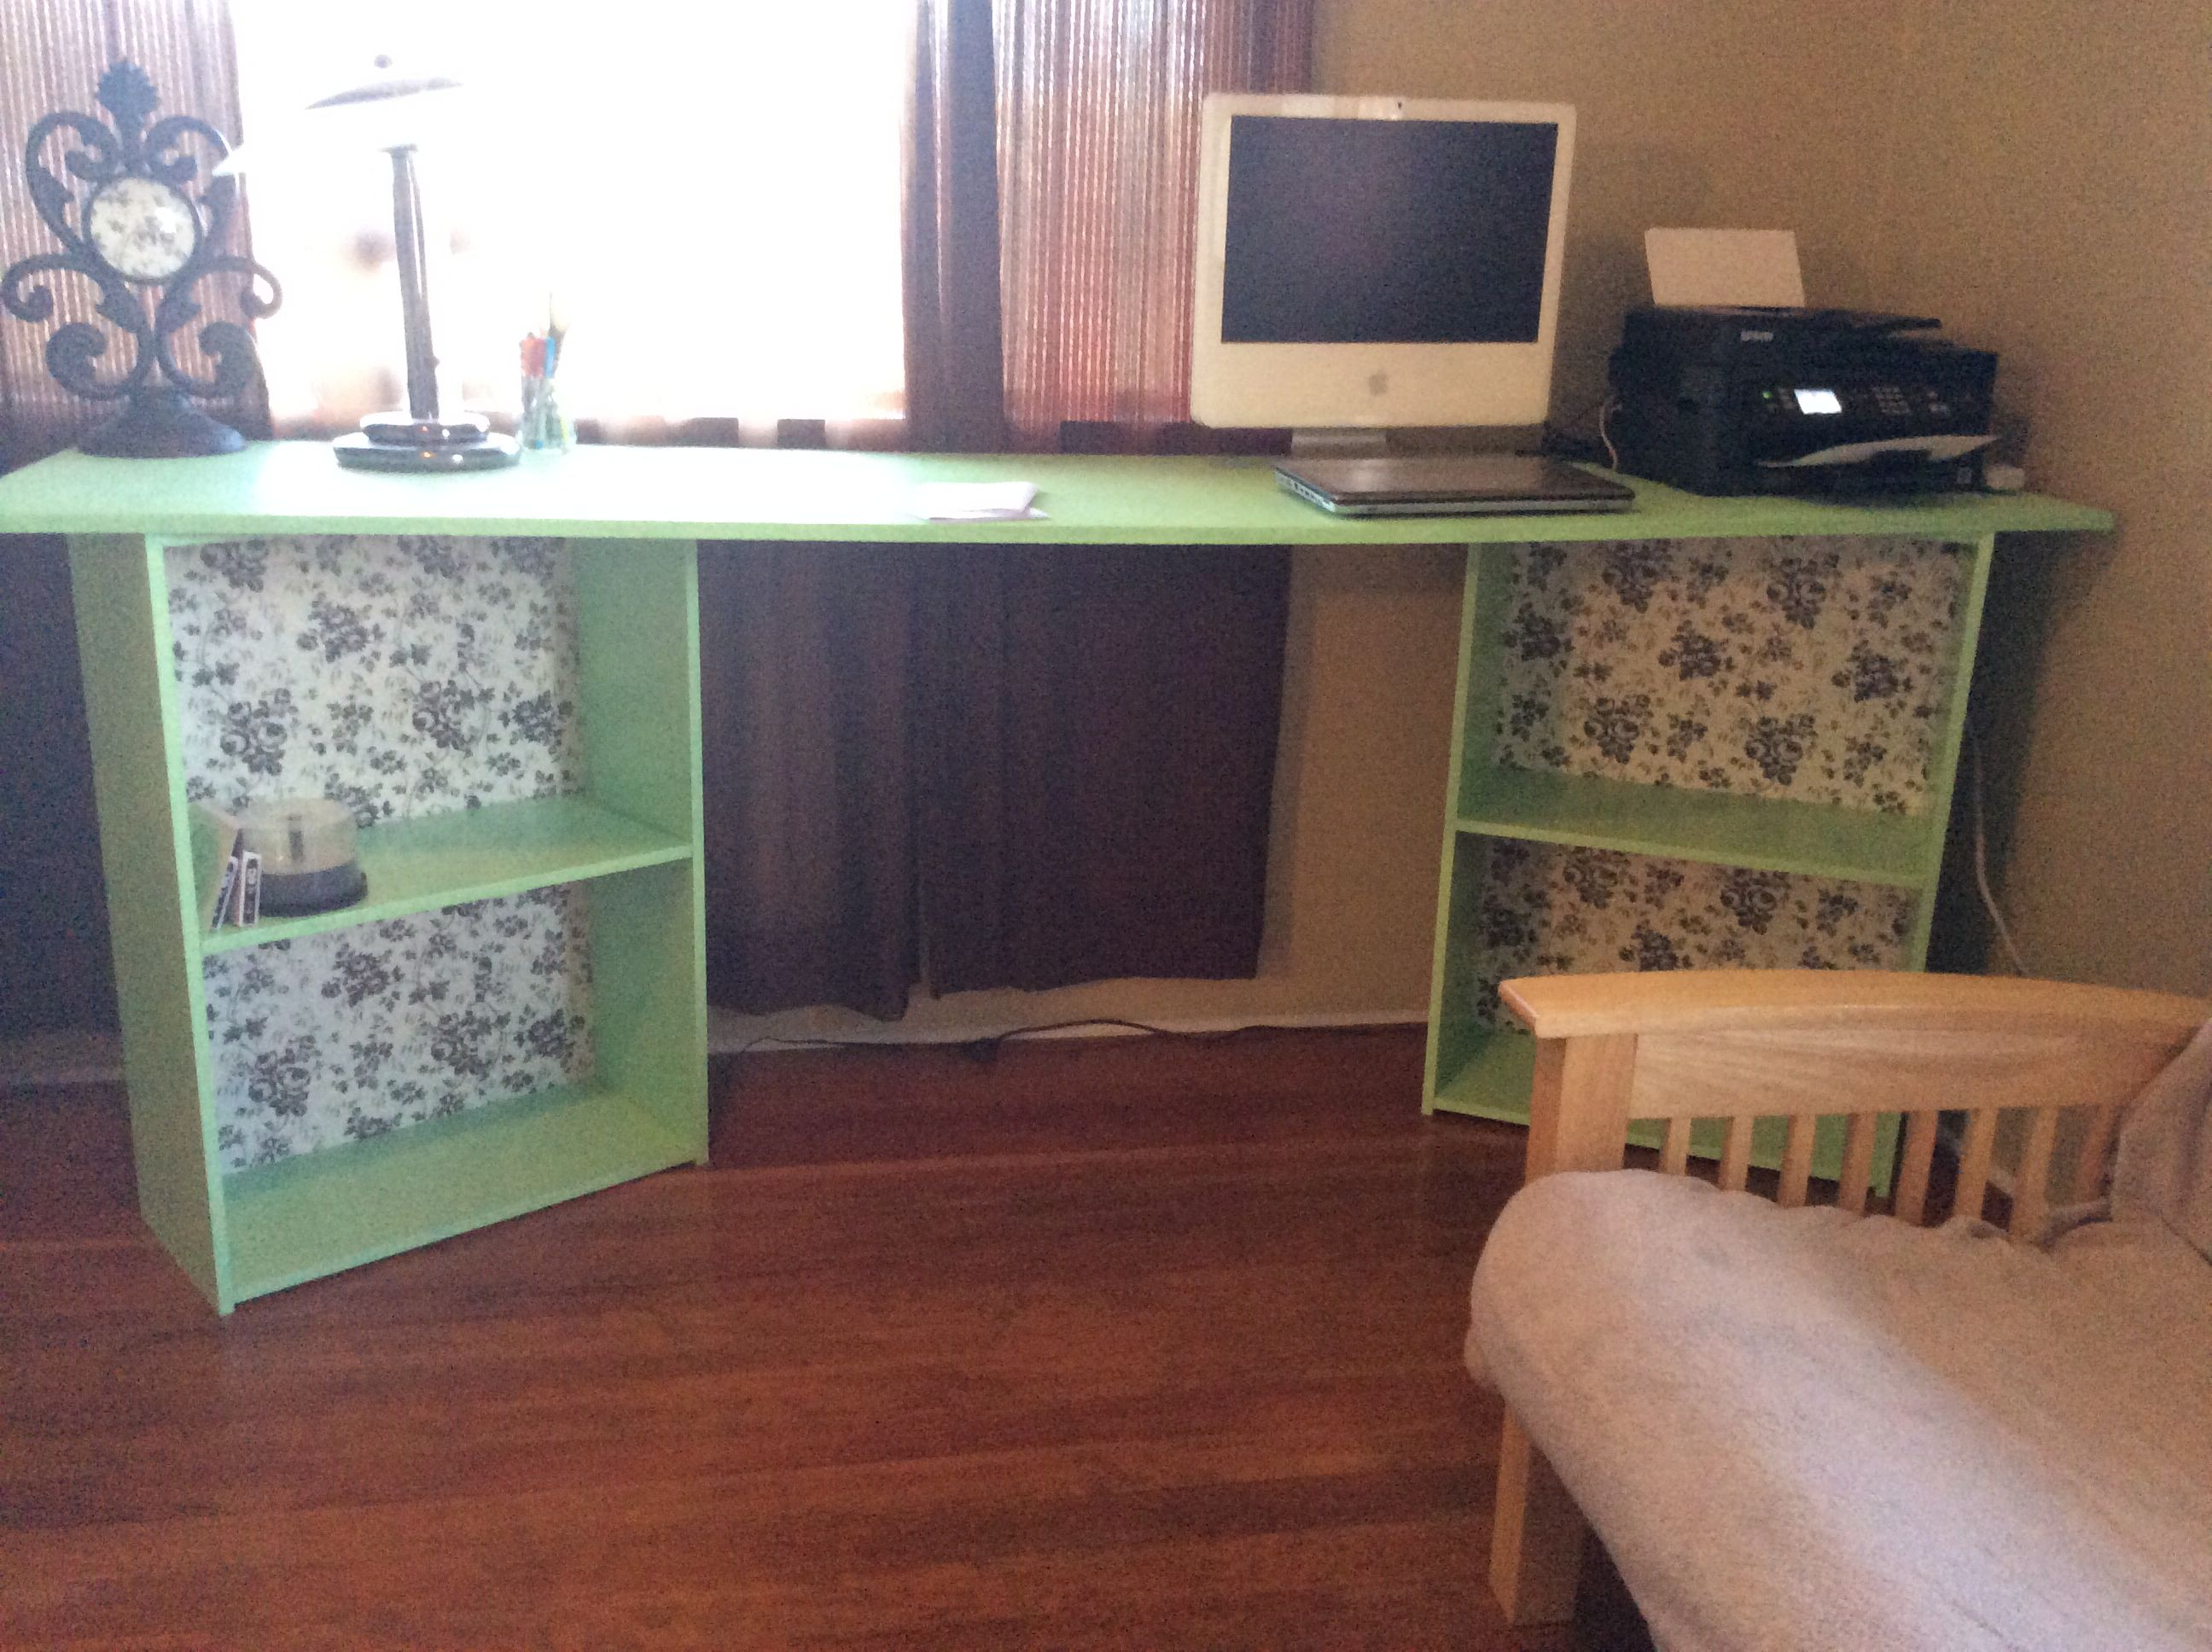 8 Foot Long Homemade Desk 2 Shelves And A Piece Of Particle Board Homemade Desk Craft Room Diy Home Office Desks